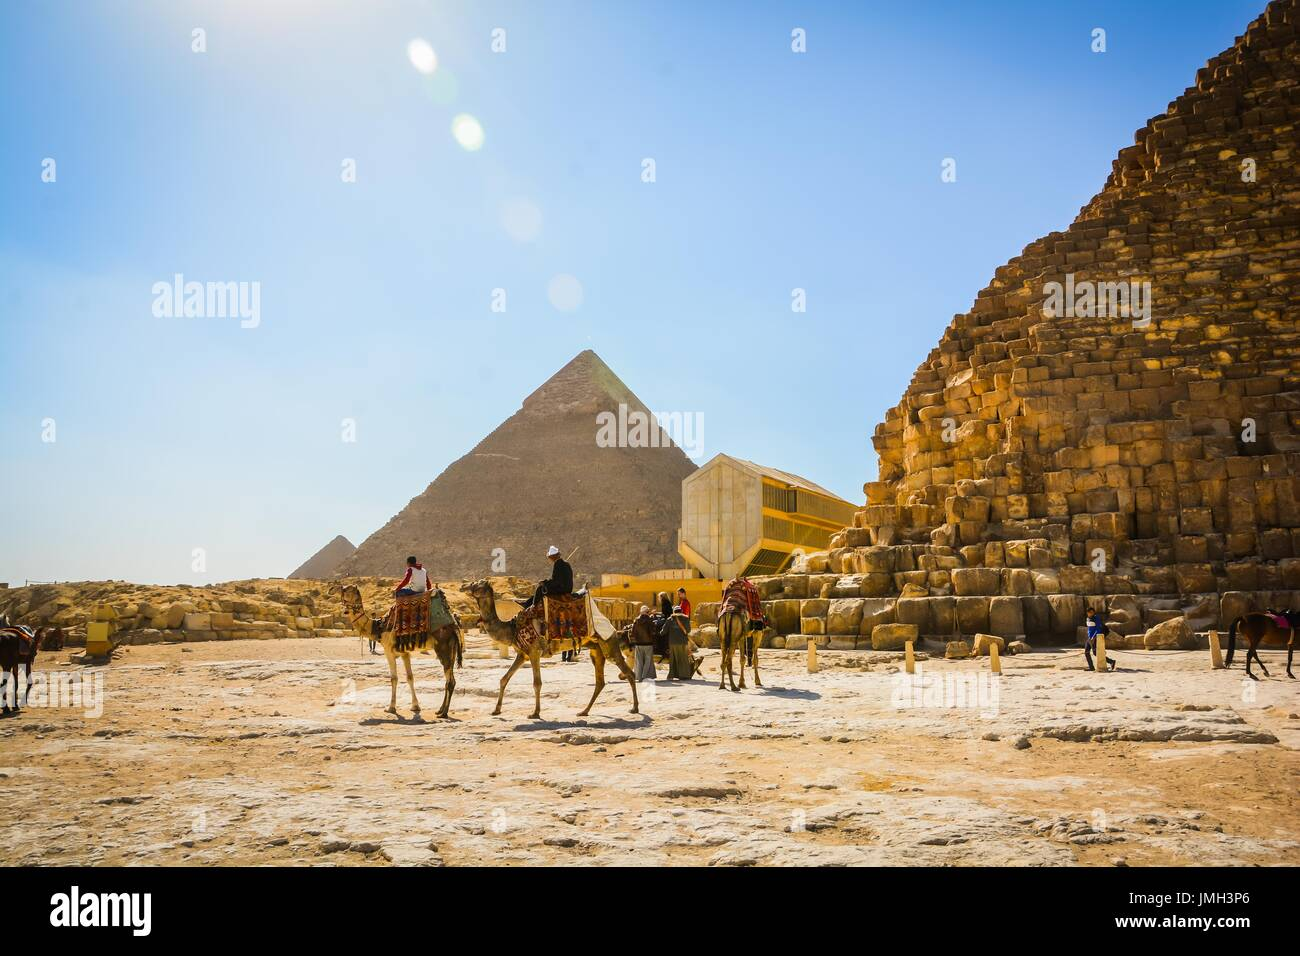 Riding camels near the pyramids - Stock Image